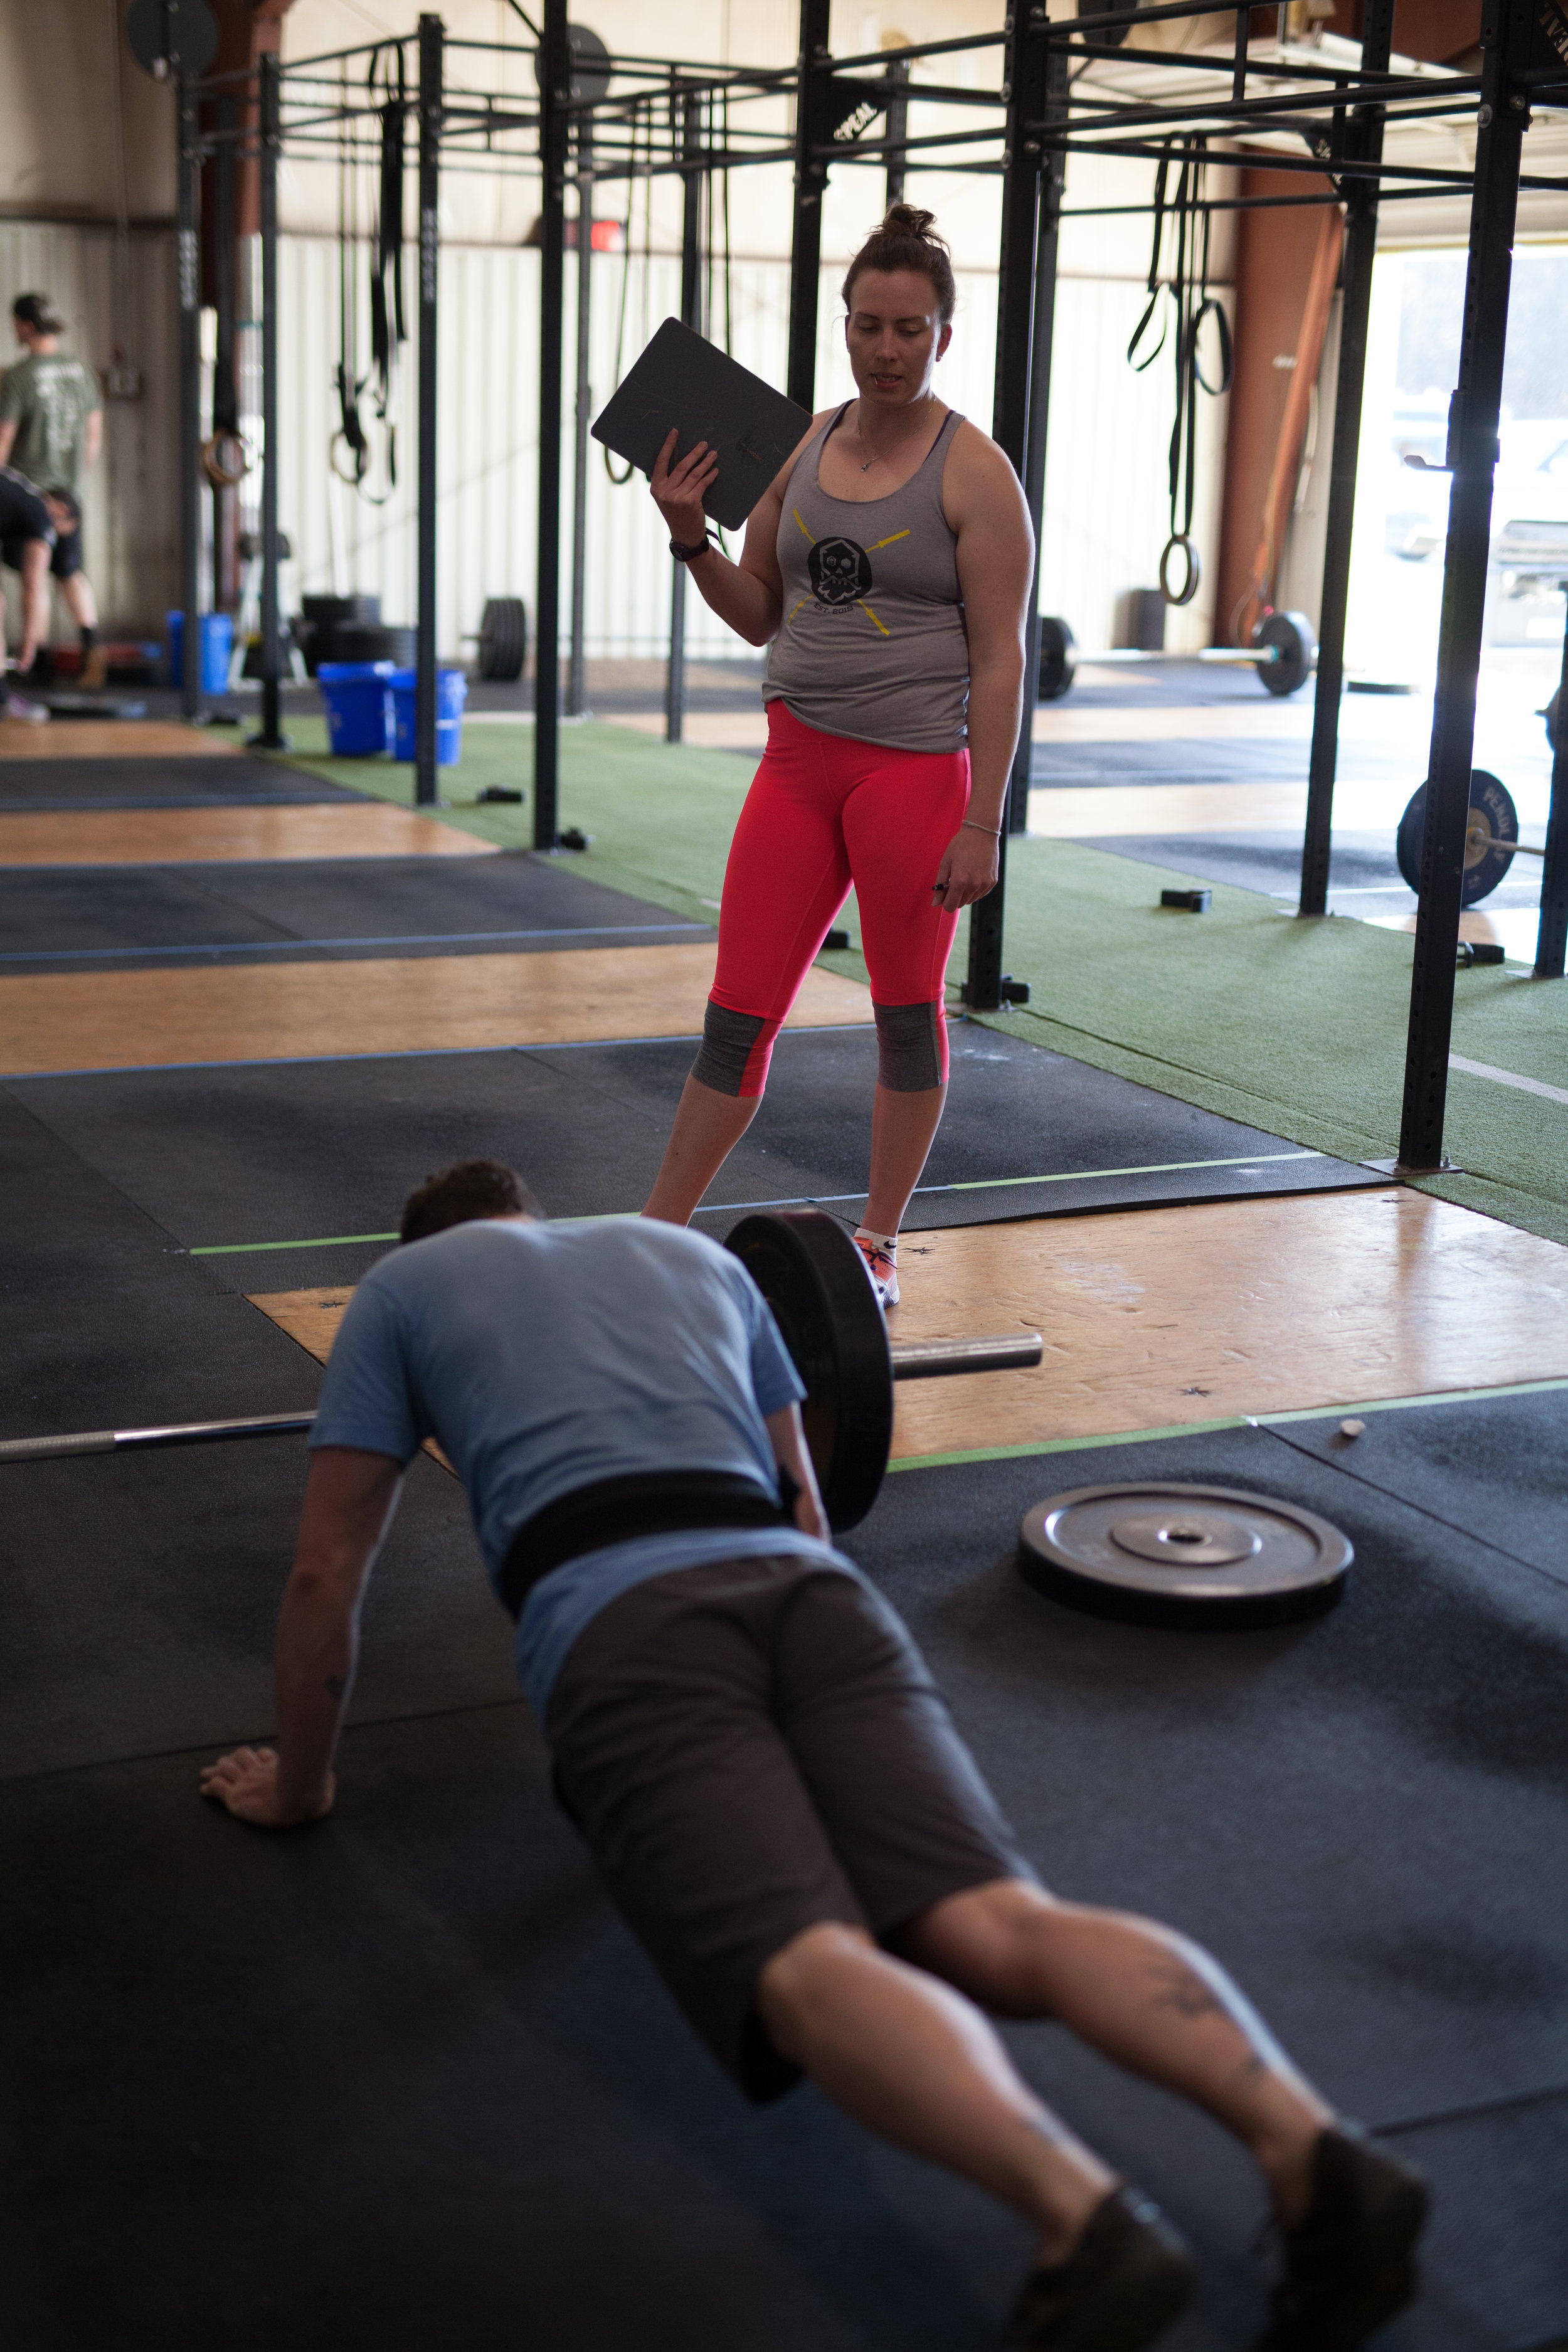 coaches - Crossfit - Crossfit open - compete - burpees